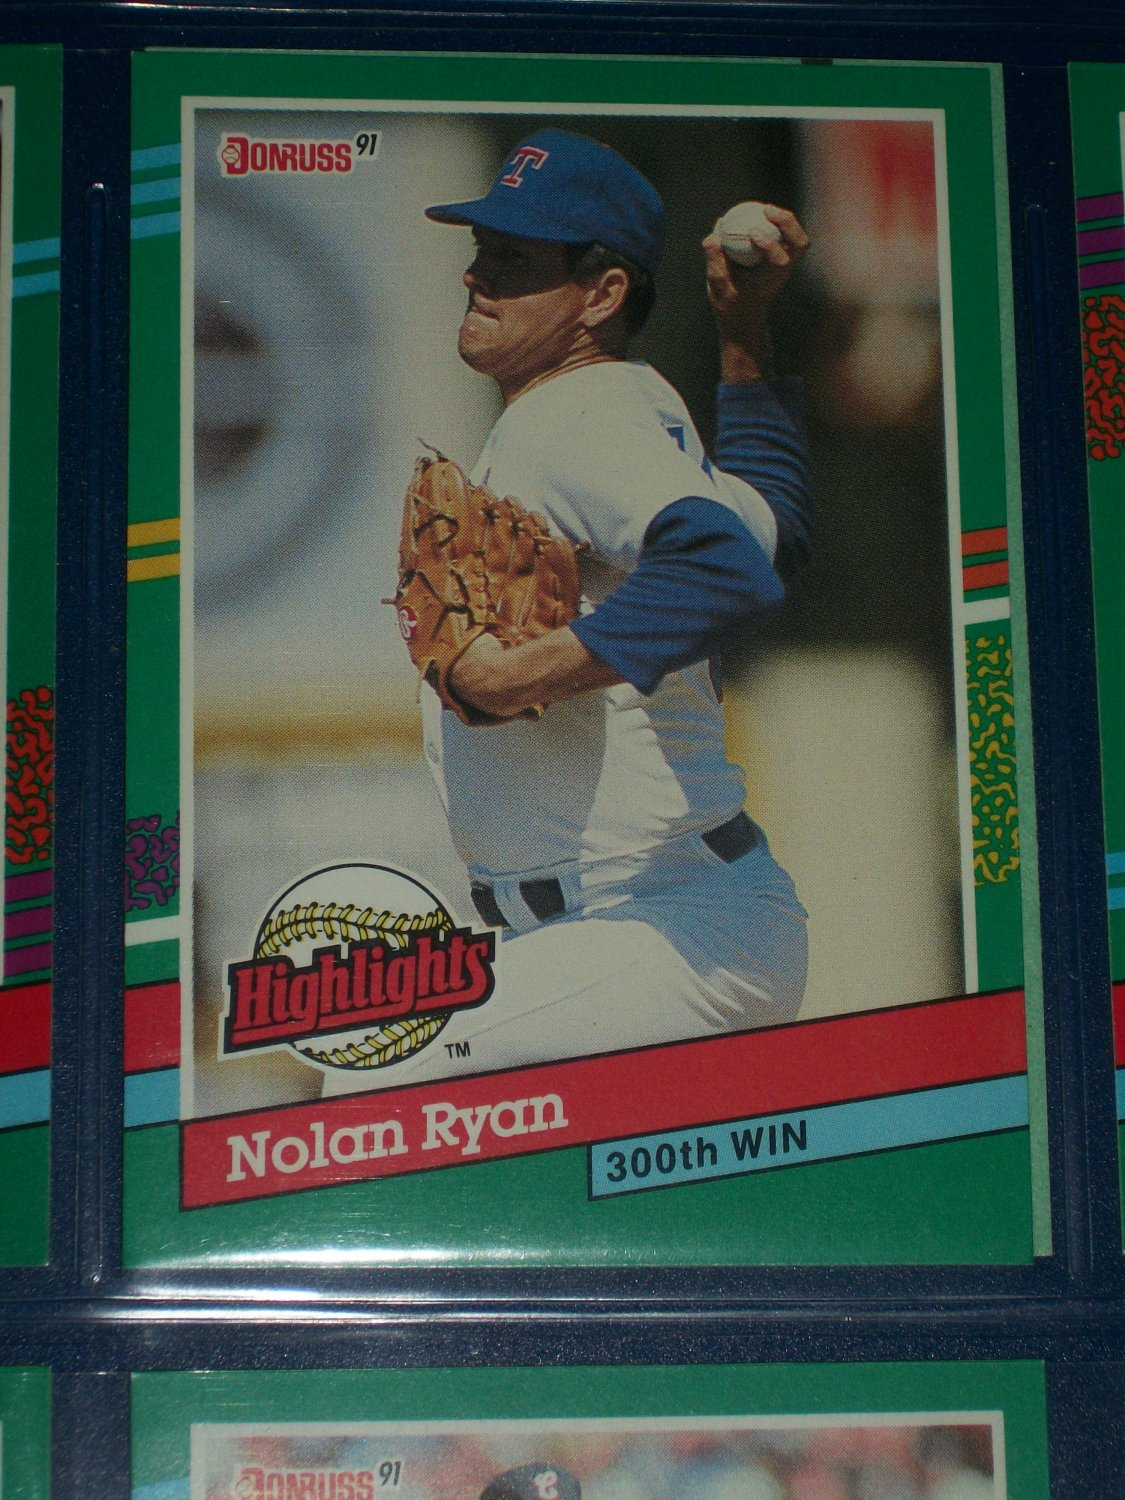 Nolan Ryan 1991 Donruss Highlights baseball card- 300th win